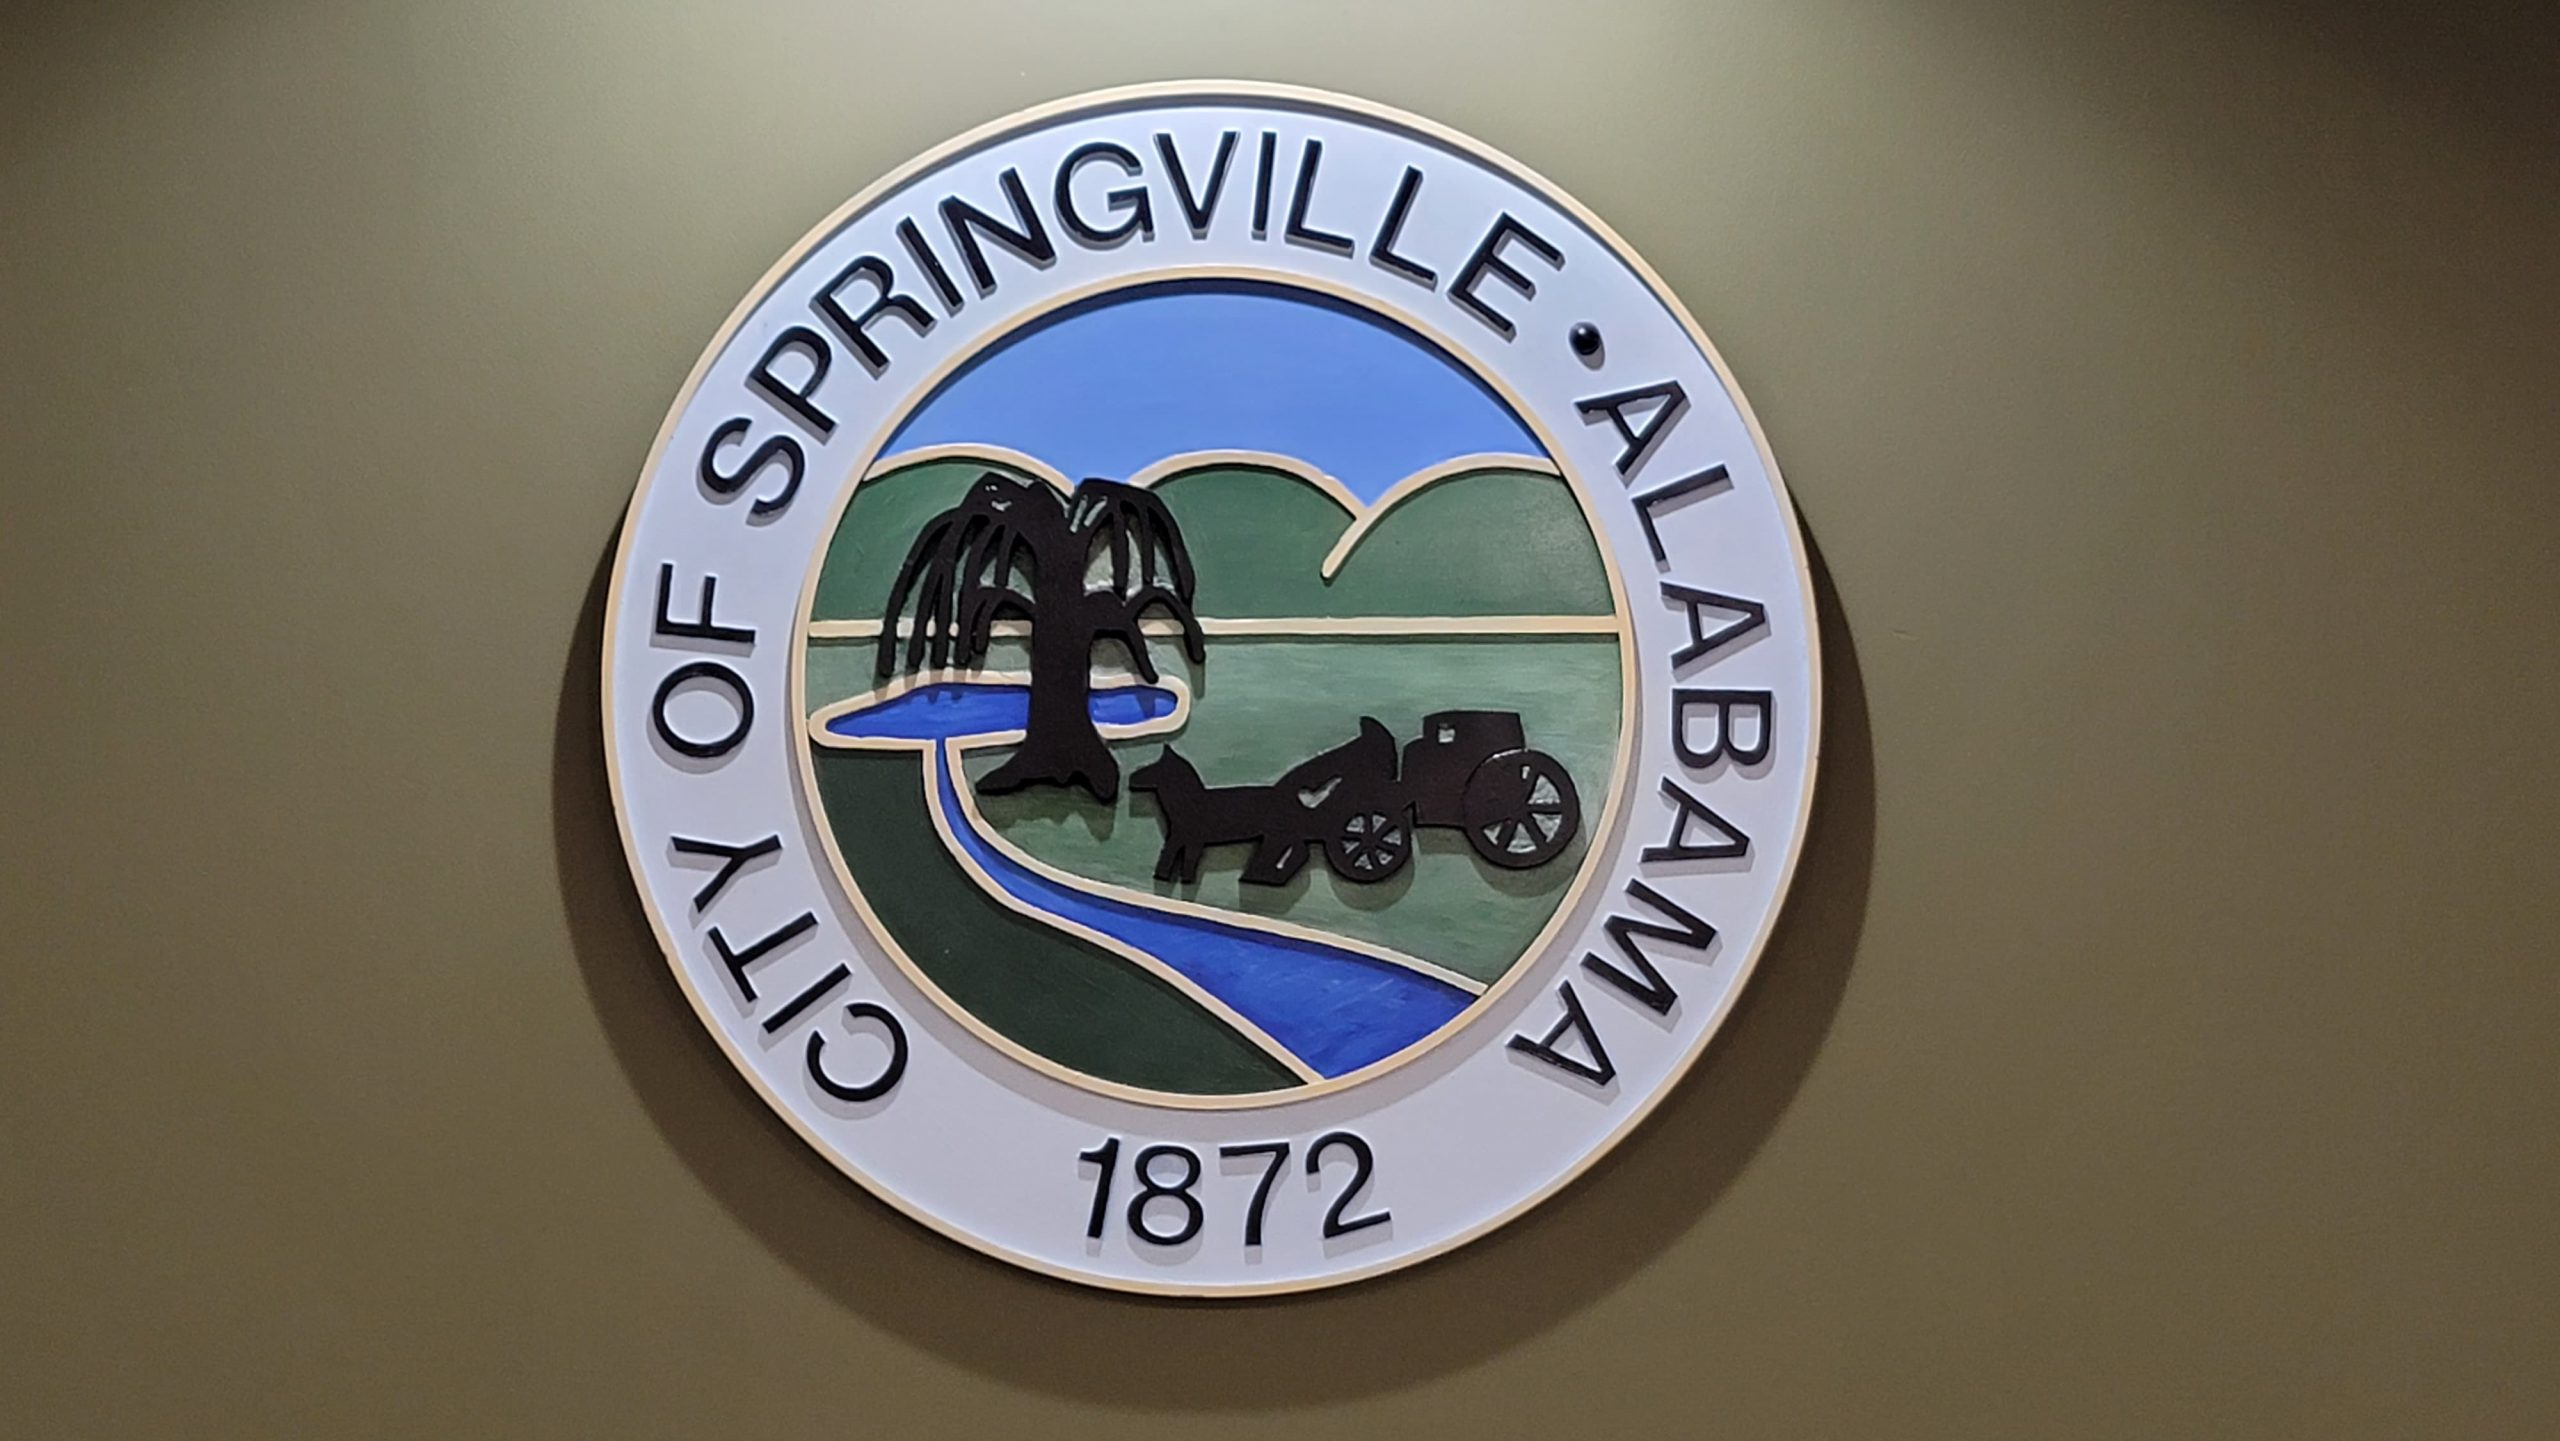 Springville delays consideration of new budget until February